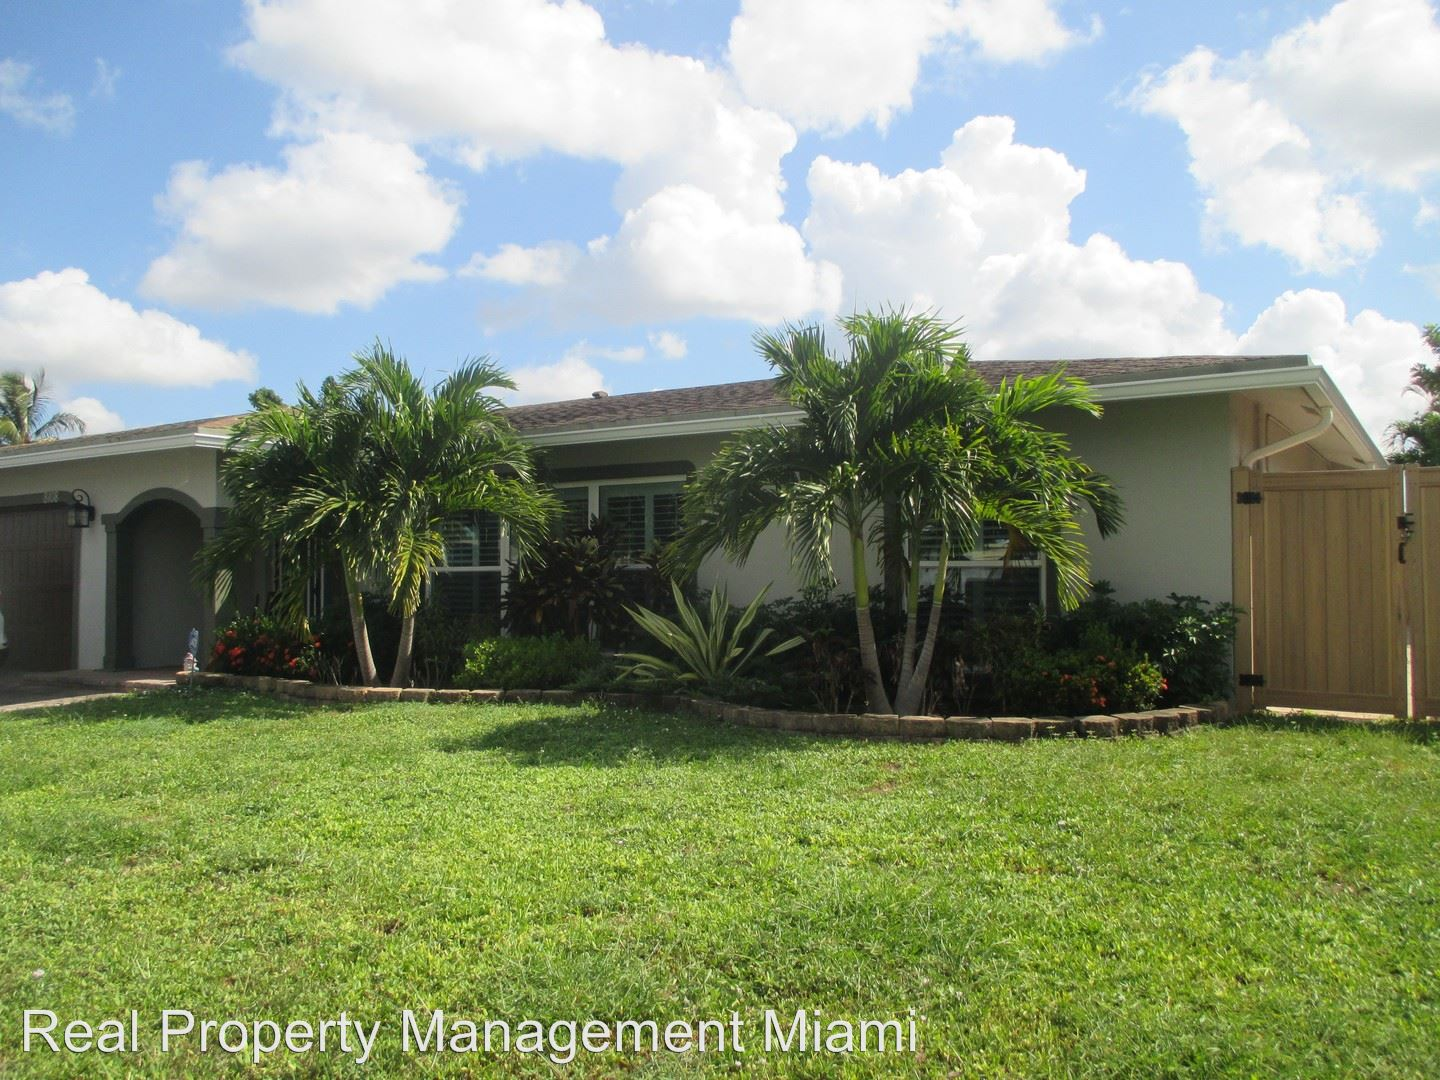 20 Best Apartments For Rent In Tamarac Fl With Pictures